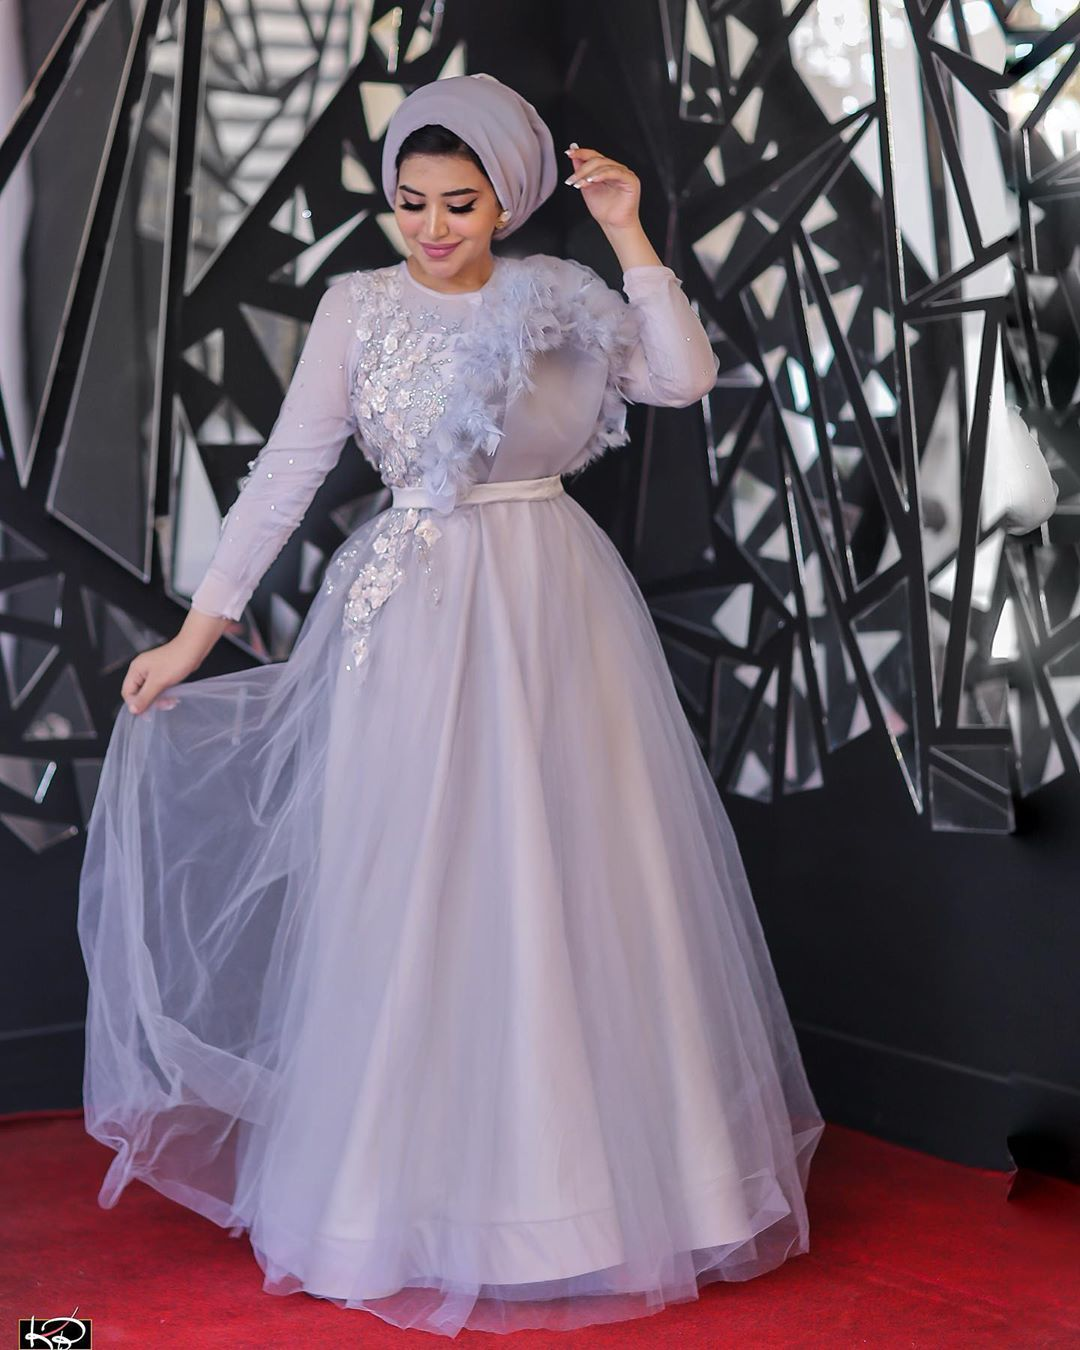 كل سنة وأنتم طيبين وعيد سعيد ومبارك عليكم جميعا Dress From Dalia Hamdy Haute Couture Photographe Soiree Dress Hijab Dress Party Tea Length Bridesmaid Dresses